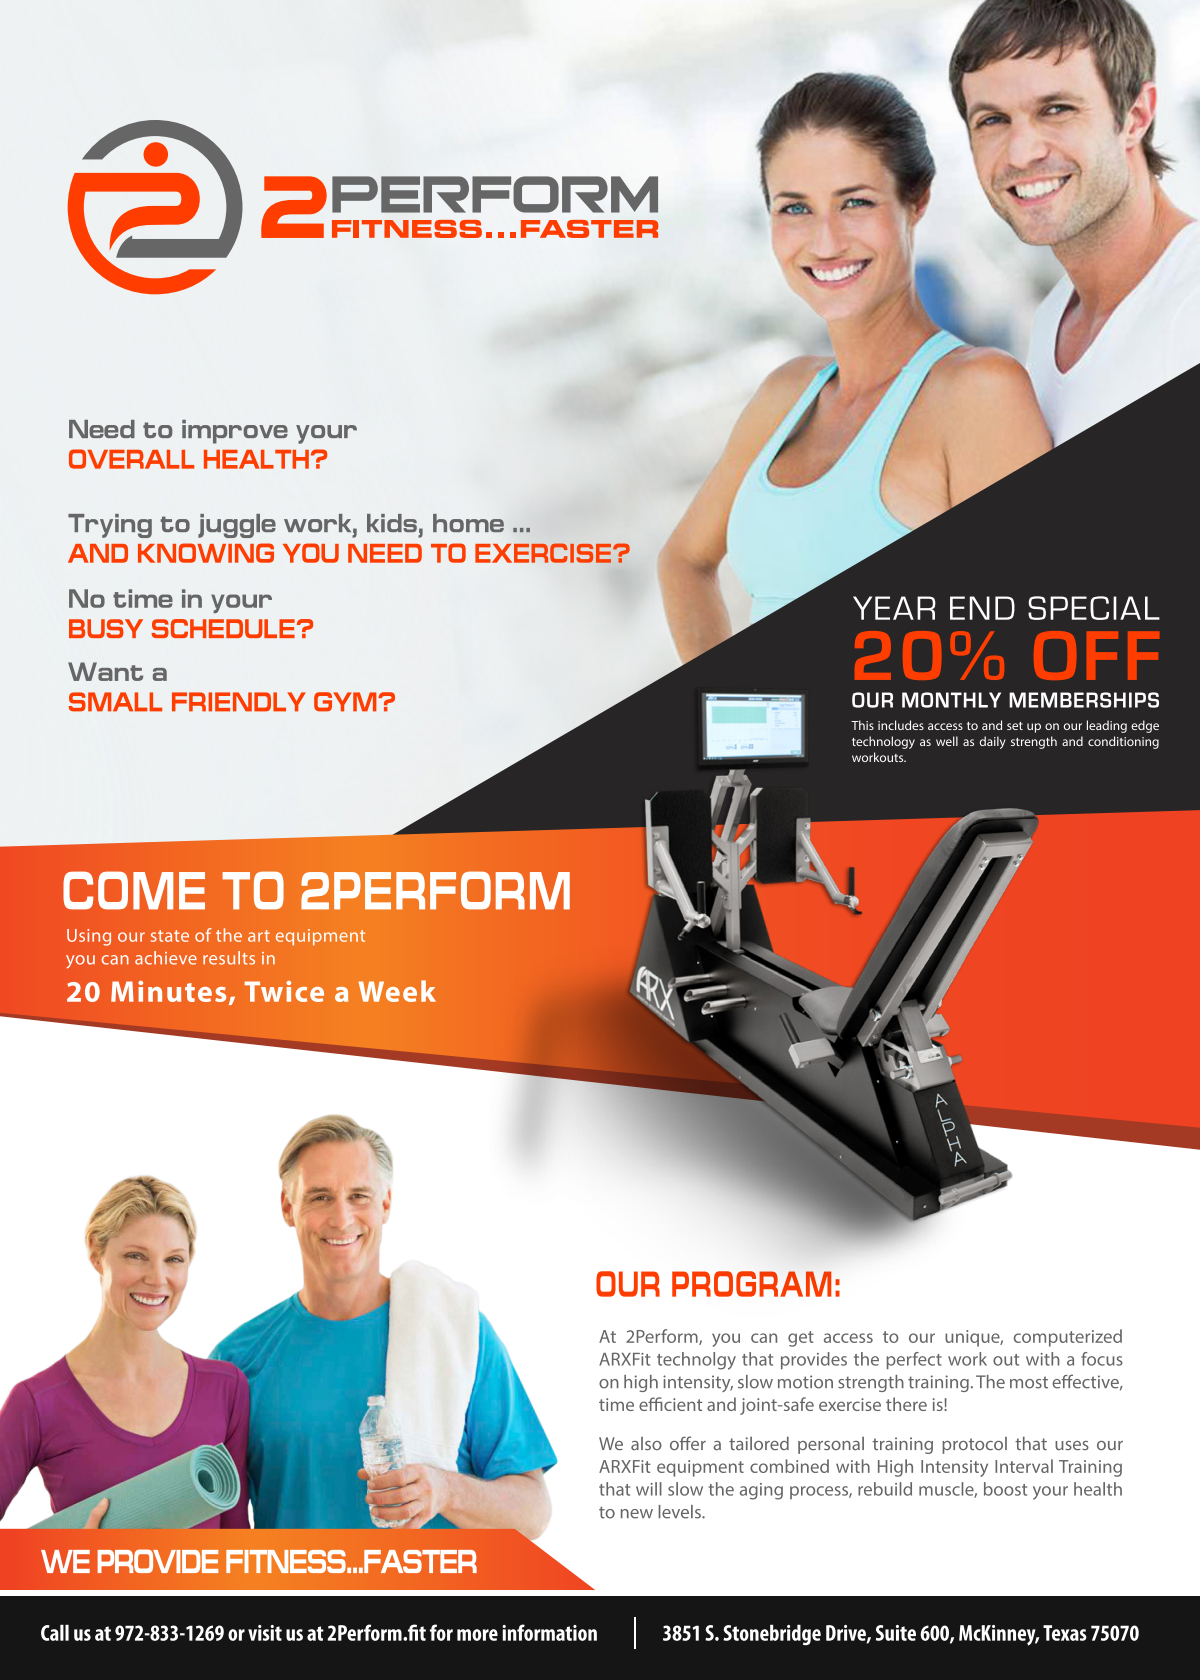 Edited flyers for boutique fitness center